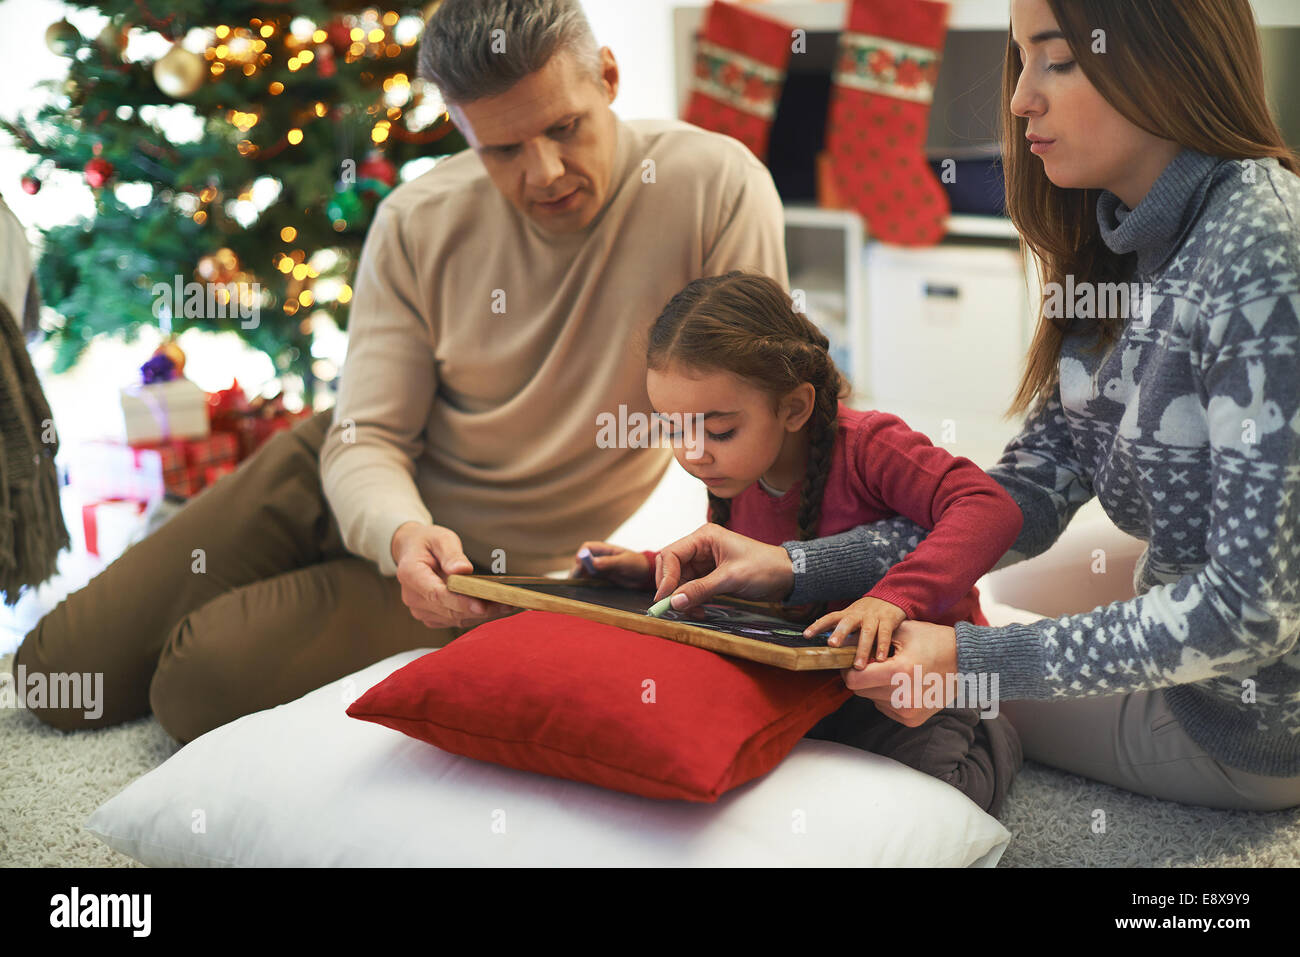 Man and woman teaching their daughter how to write - Stock Image